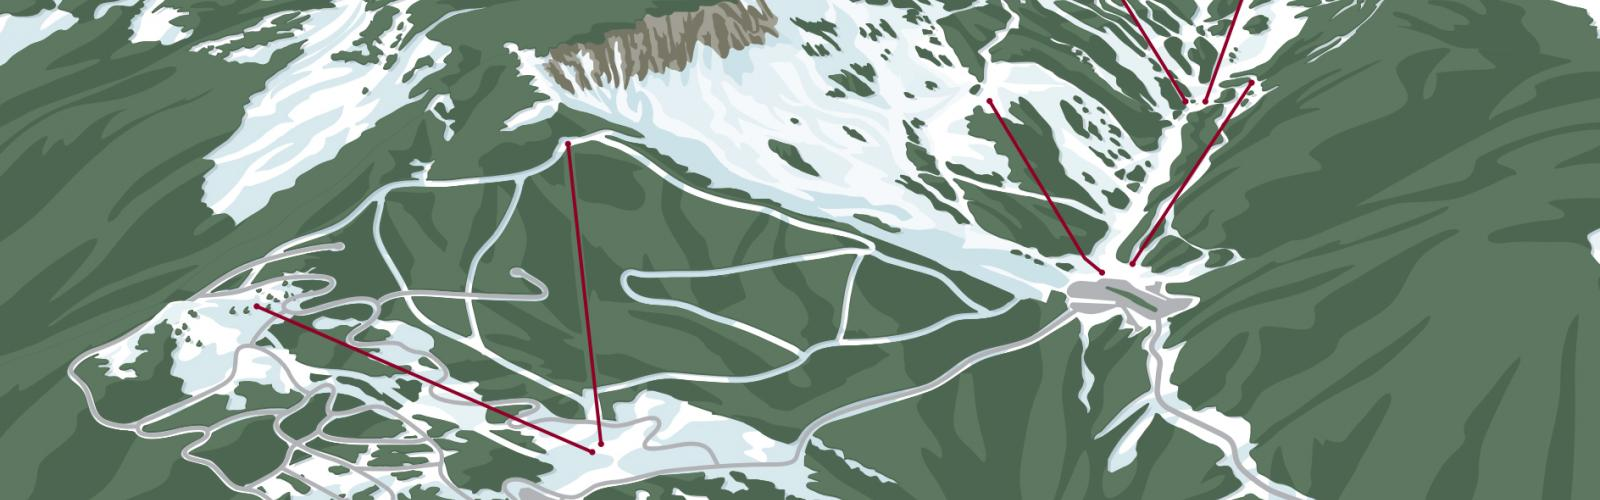 Artist rendering of expansion plan showing chairlift locations.